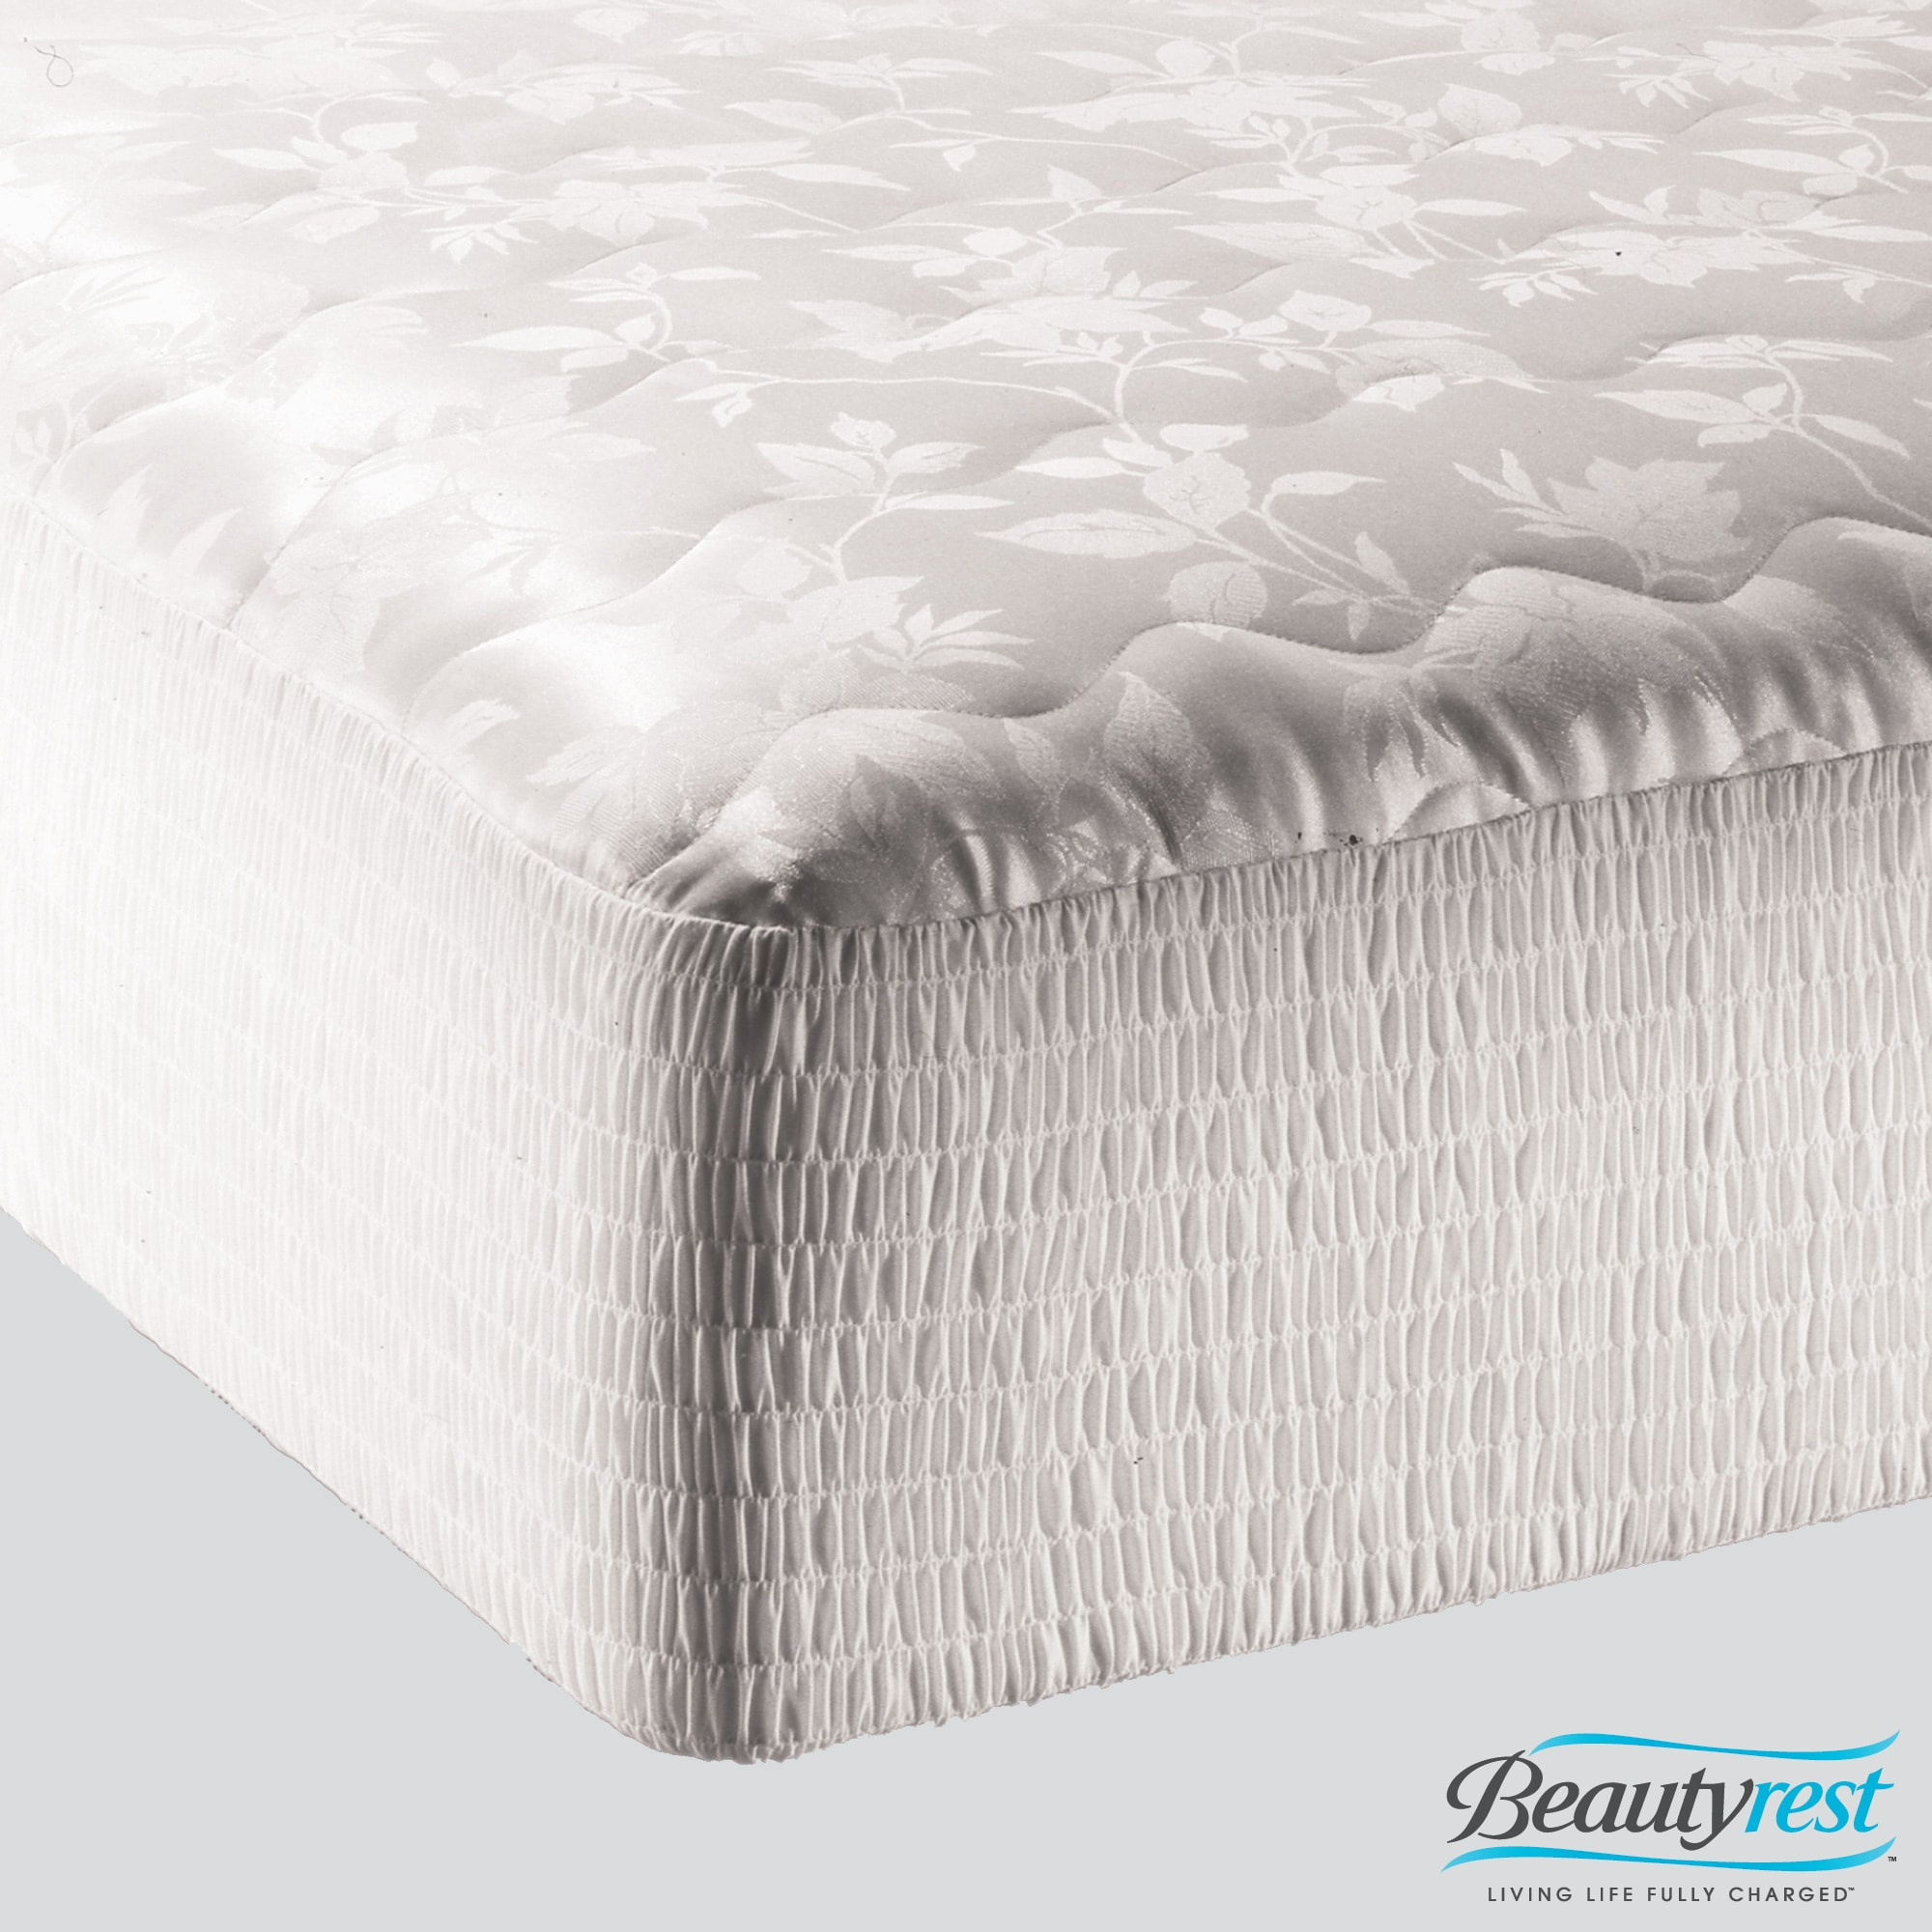 Beautyrest Jacquard Overfilled Mattress Pad at Sears.com